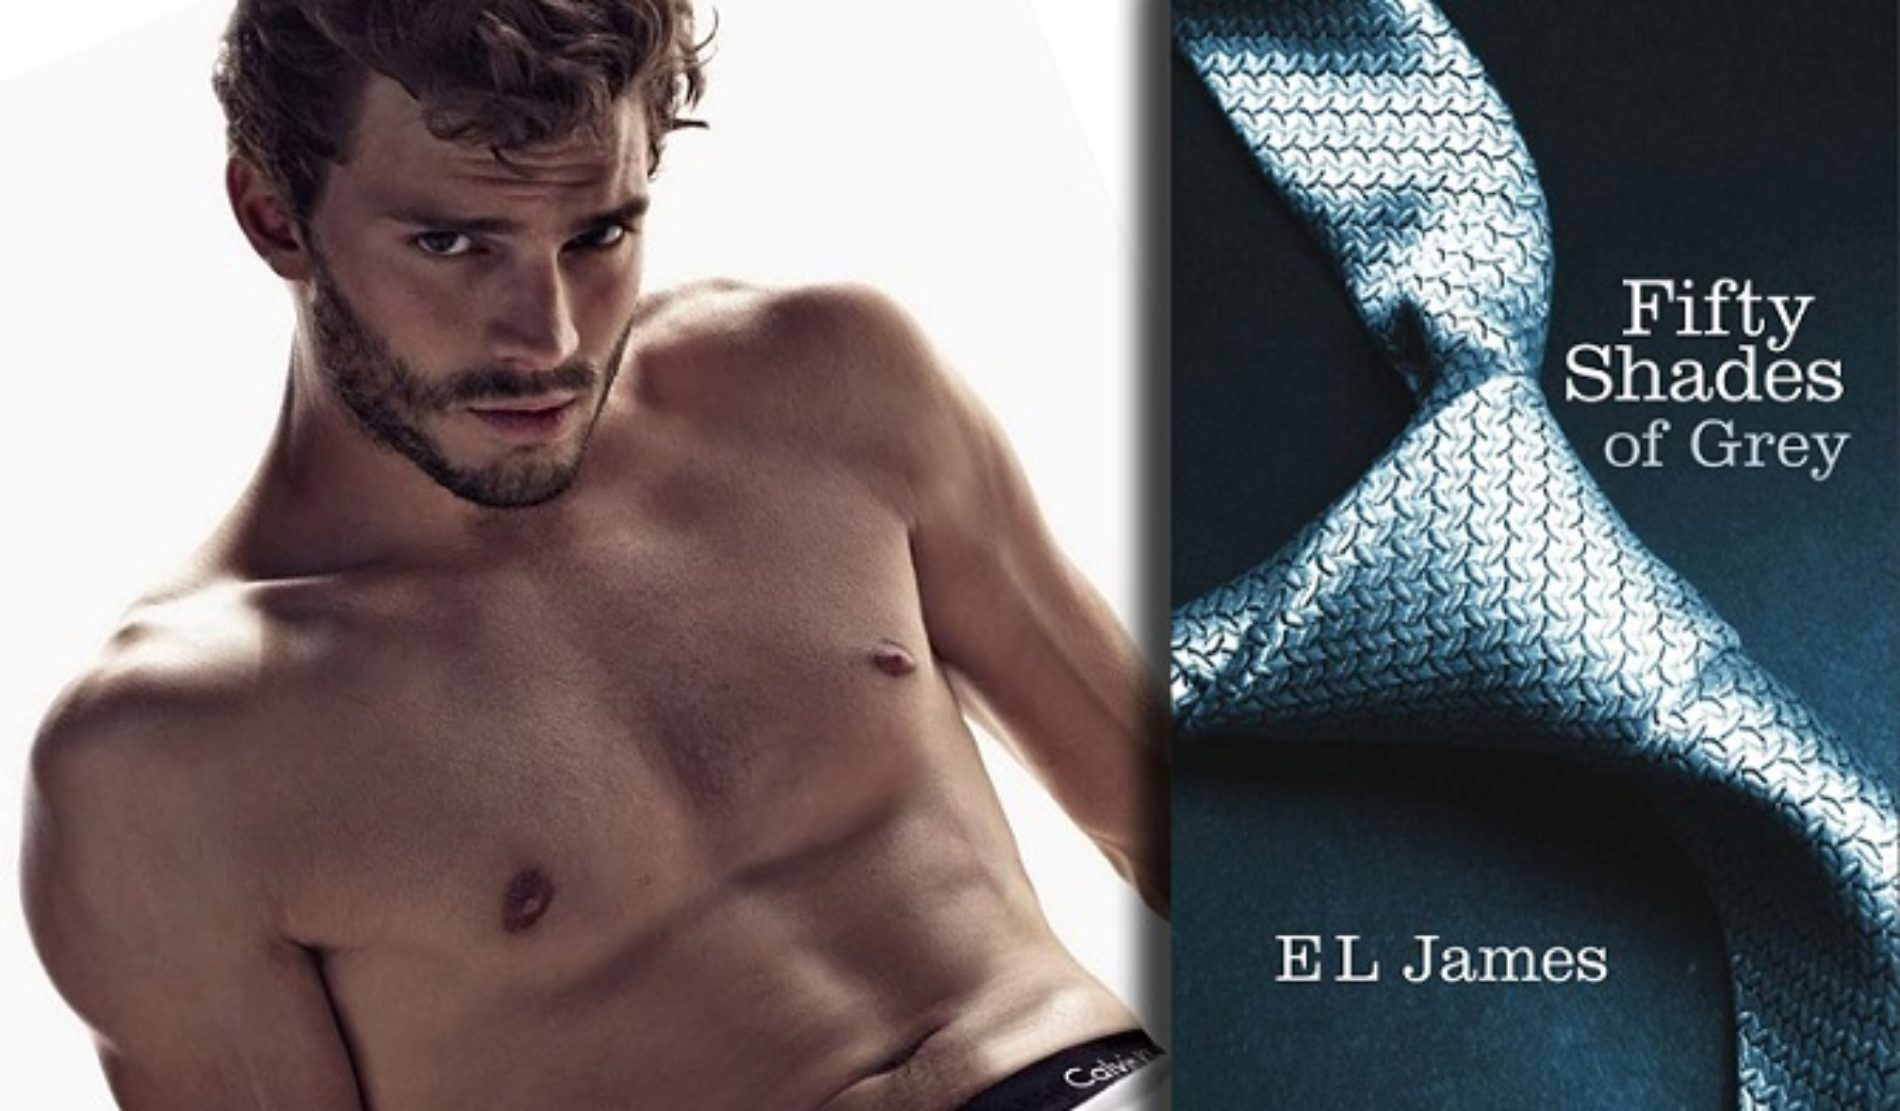 Actor Jamie Dornan reveals there will be no full-frontal nude scenes in upcoming Fifty Shades Of Grey film